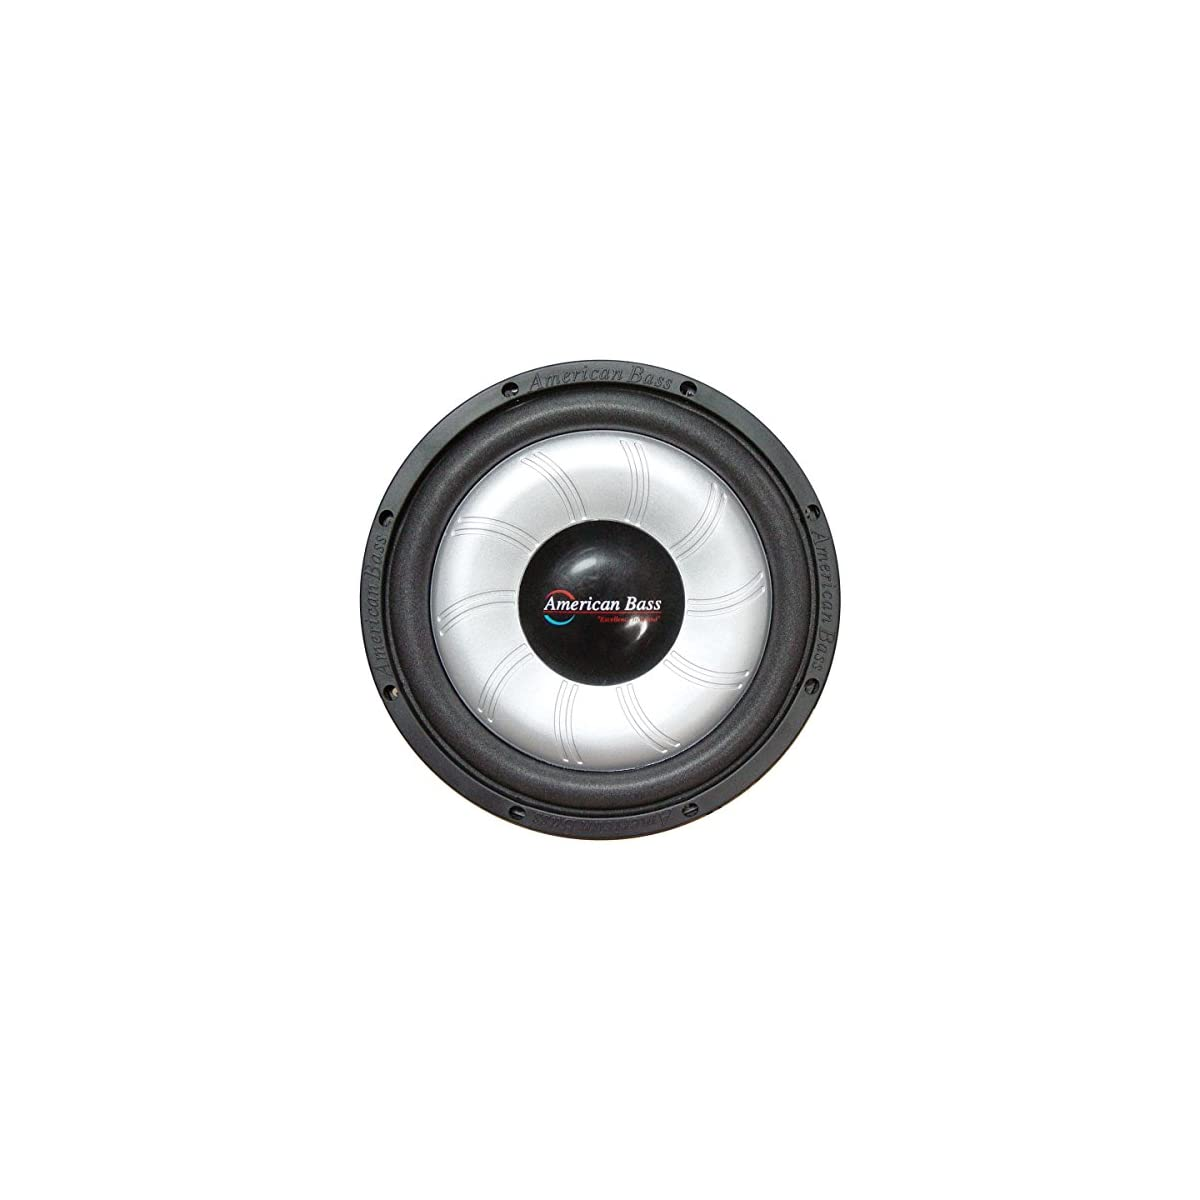 """SaleProductsOffer - No.1 Best Online Store 510KoHg1kiL American Bass 12"""" Slim Mount Wooofer 500 Watts Max 4 Ohm Svc 10in. x 10in. x 6in."""